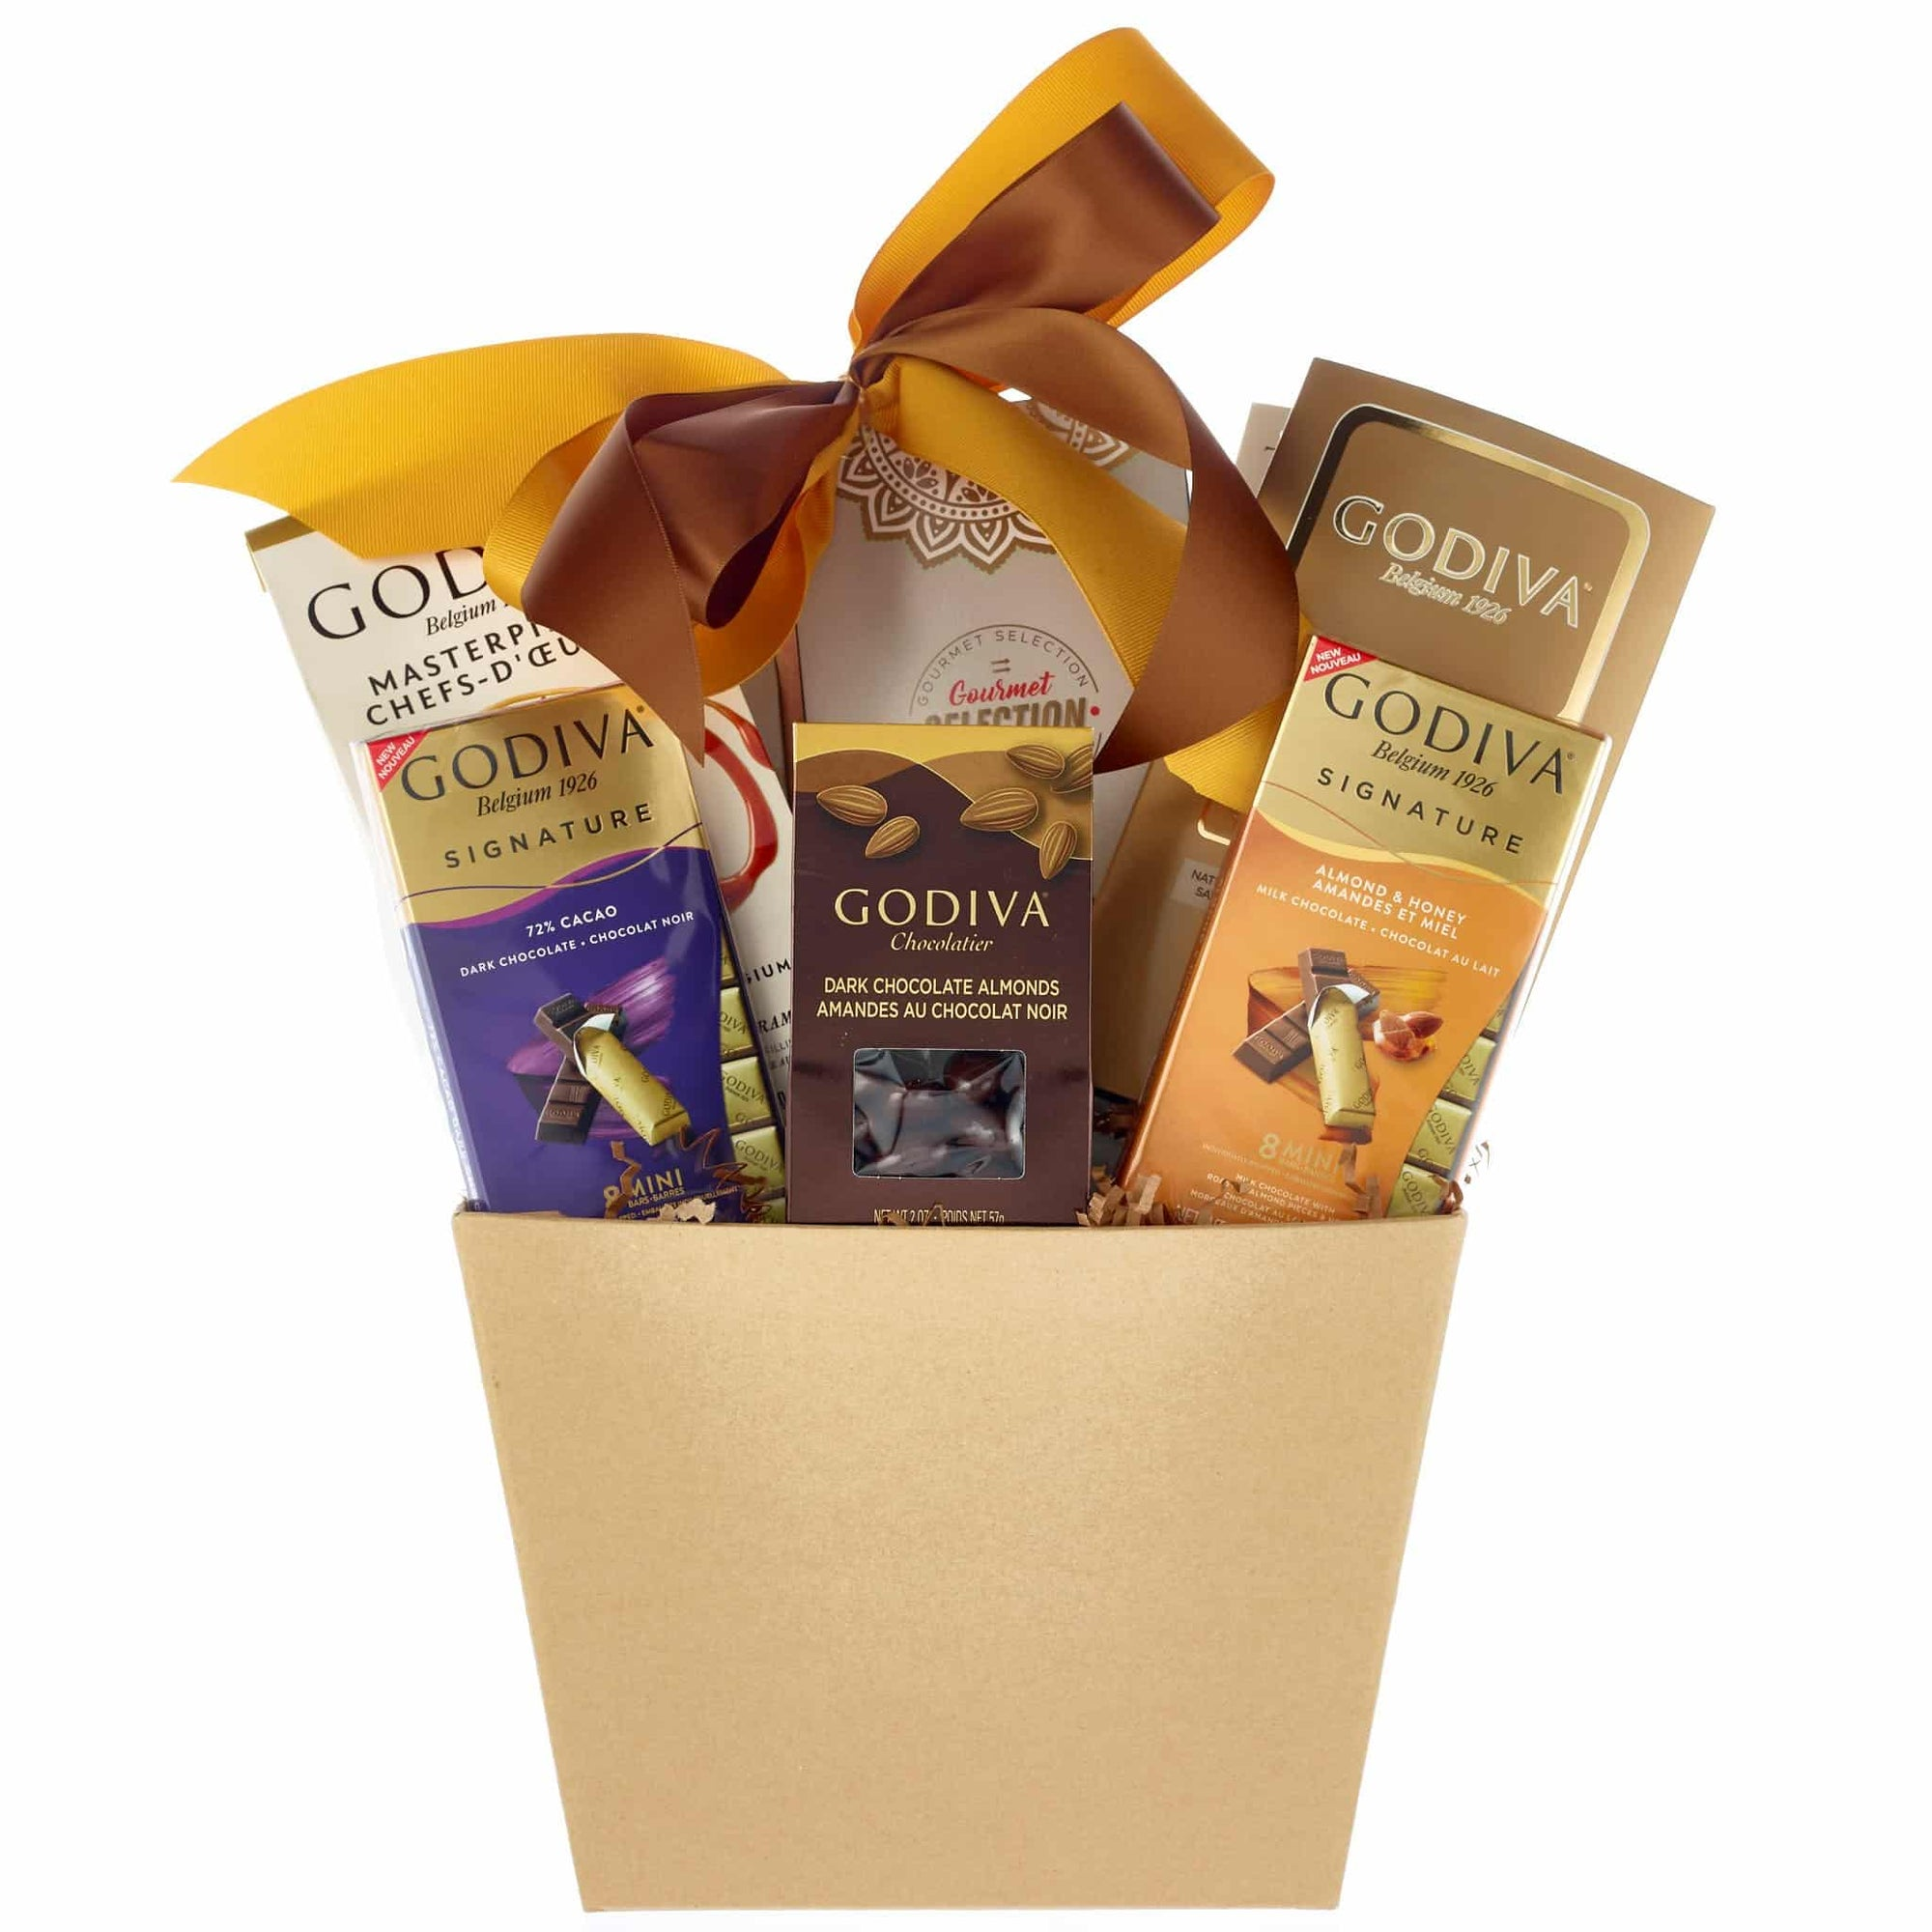 Small Godiva gift basket packed with chocolates